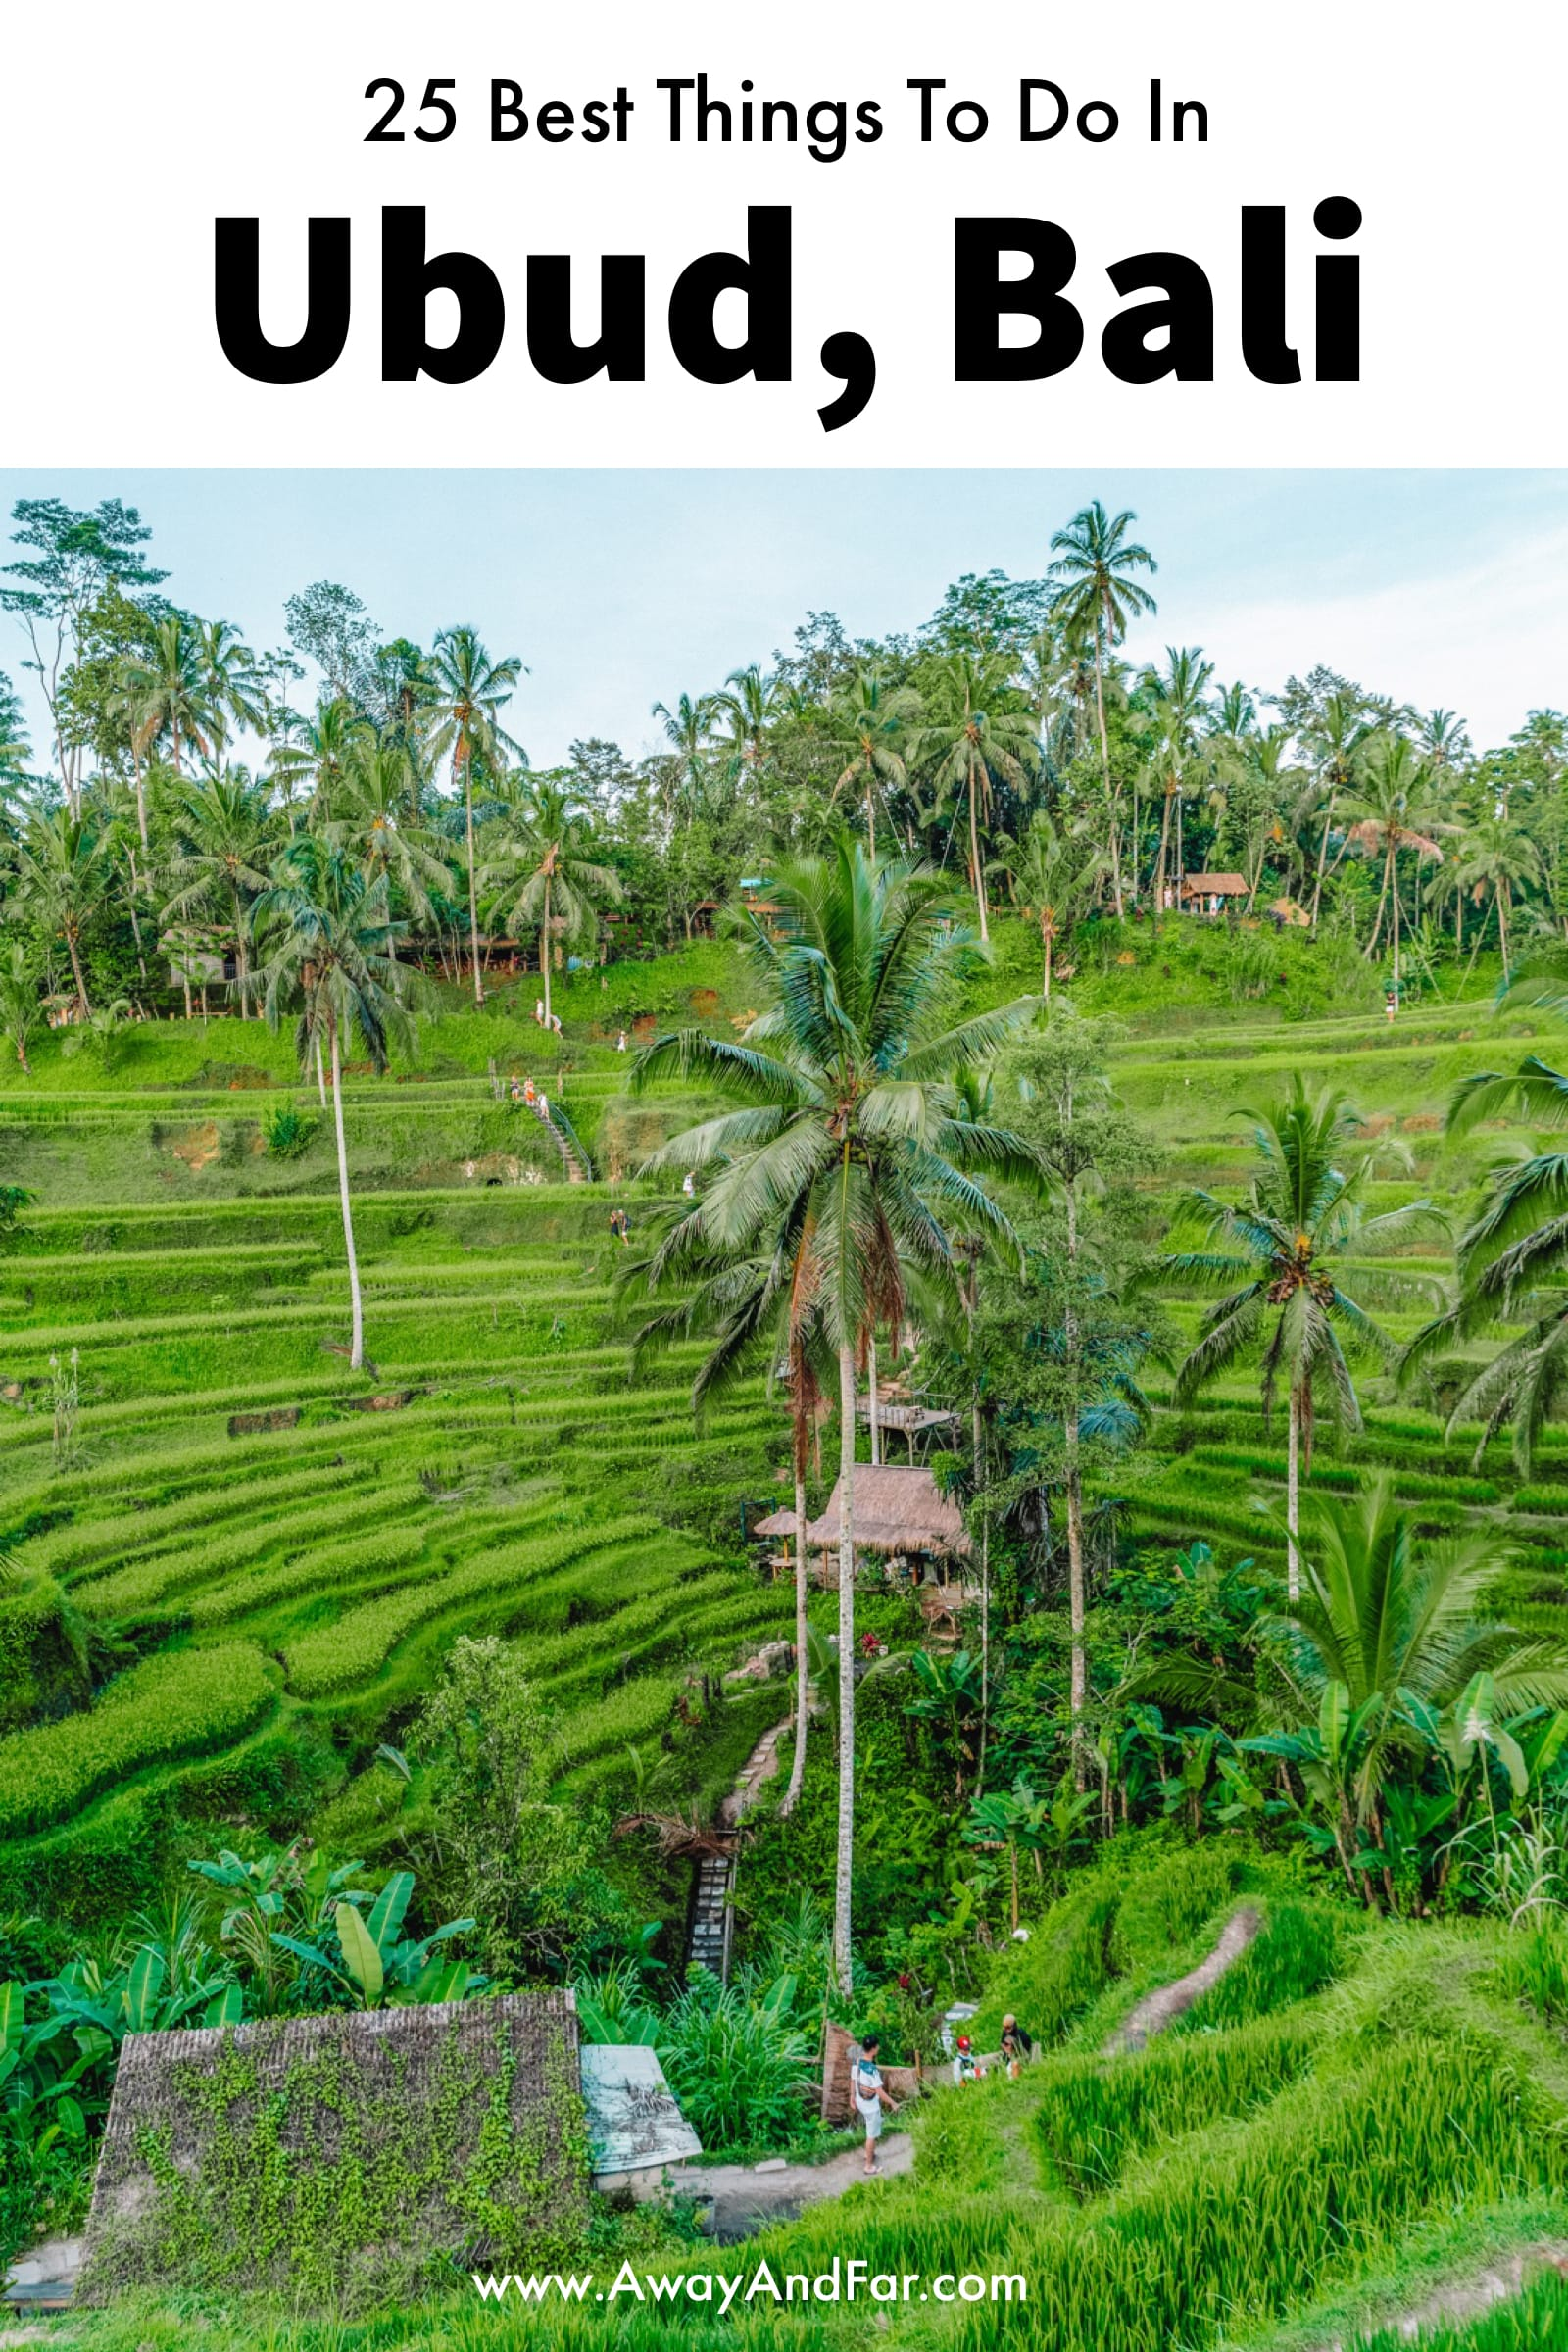 25 Best Things To Do In Ubud, Bali (1)